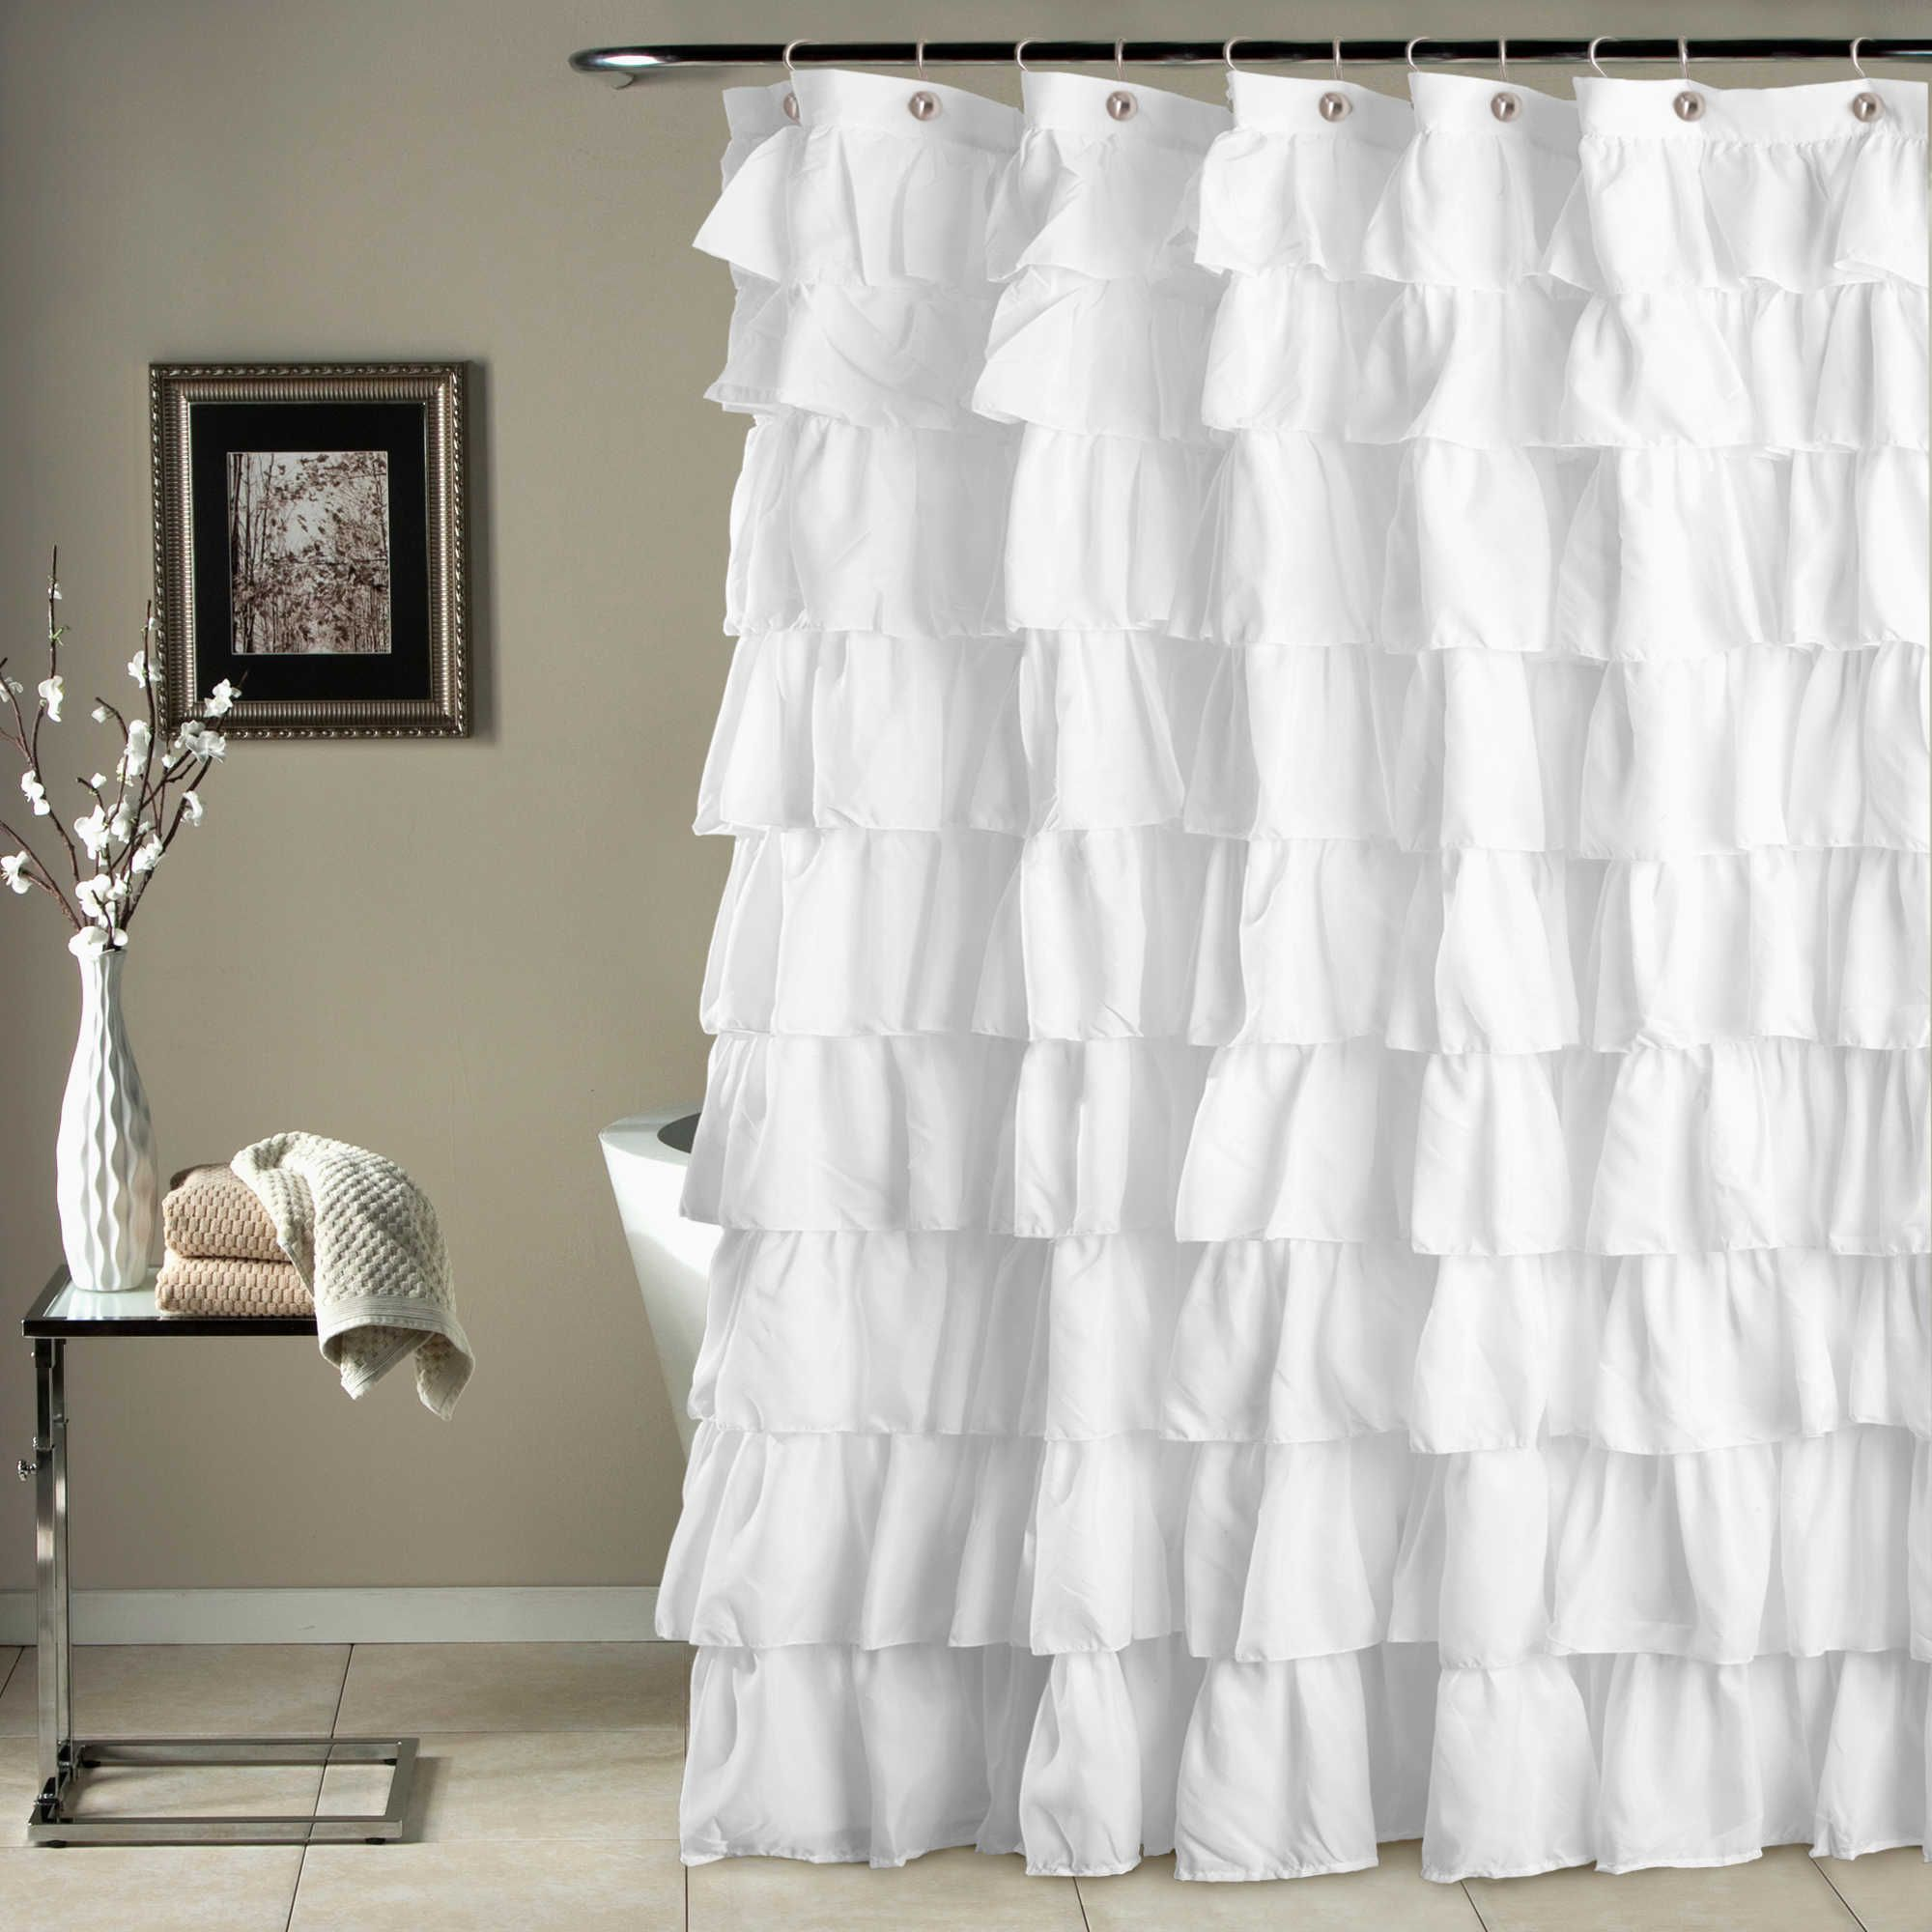 Ruffle shower curtain bed bath and beyond - Would Be Even Better In Ruffled White Lace Ruffle Shower Curtain In White